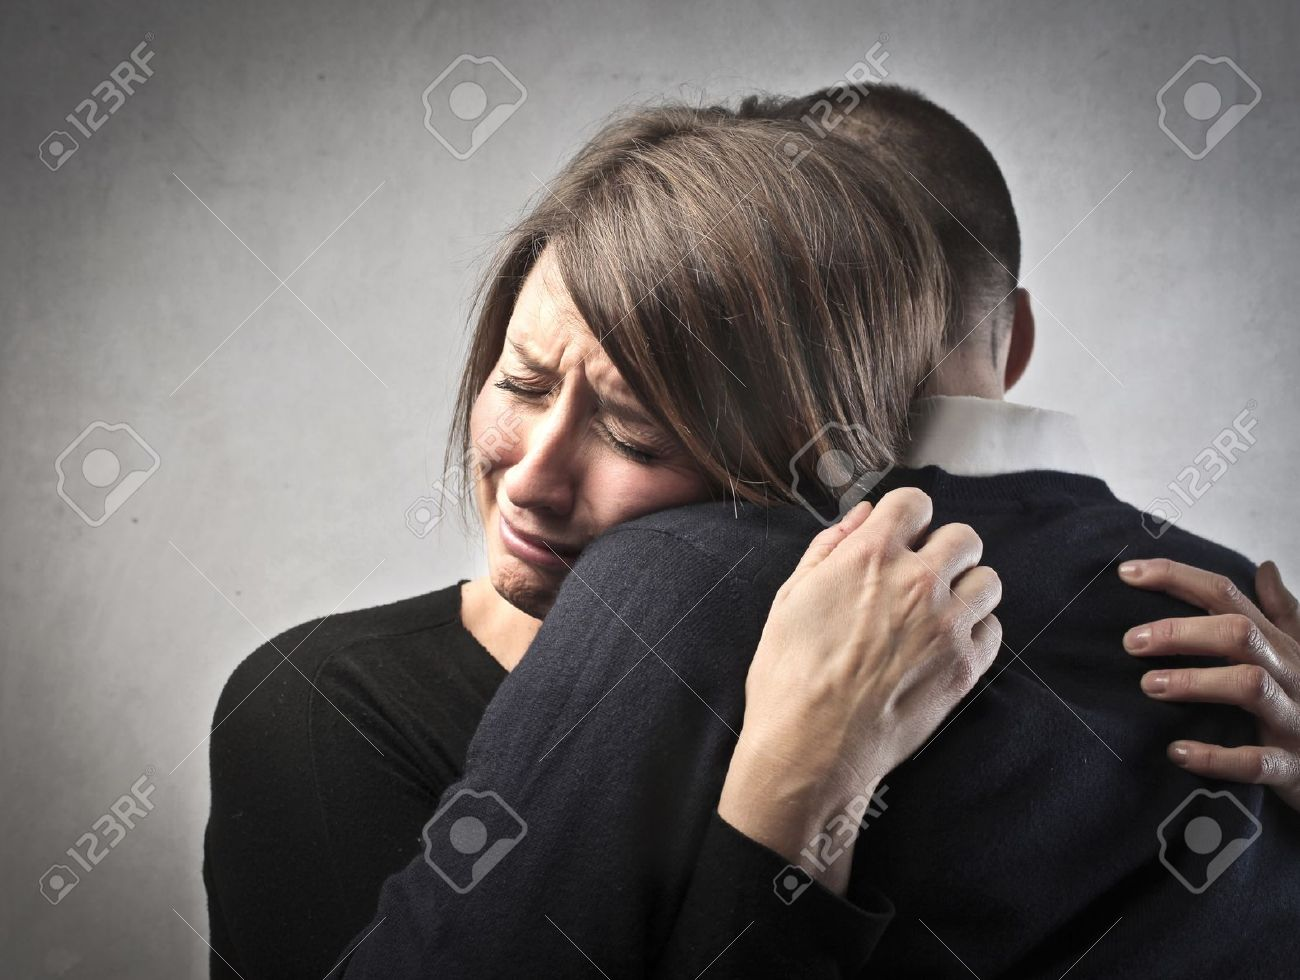 Sad woman crying on her husband s shoulder Stock Photo - 12648764